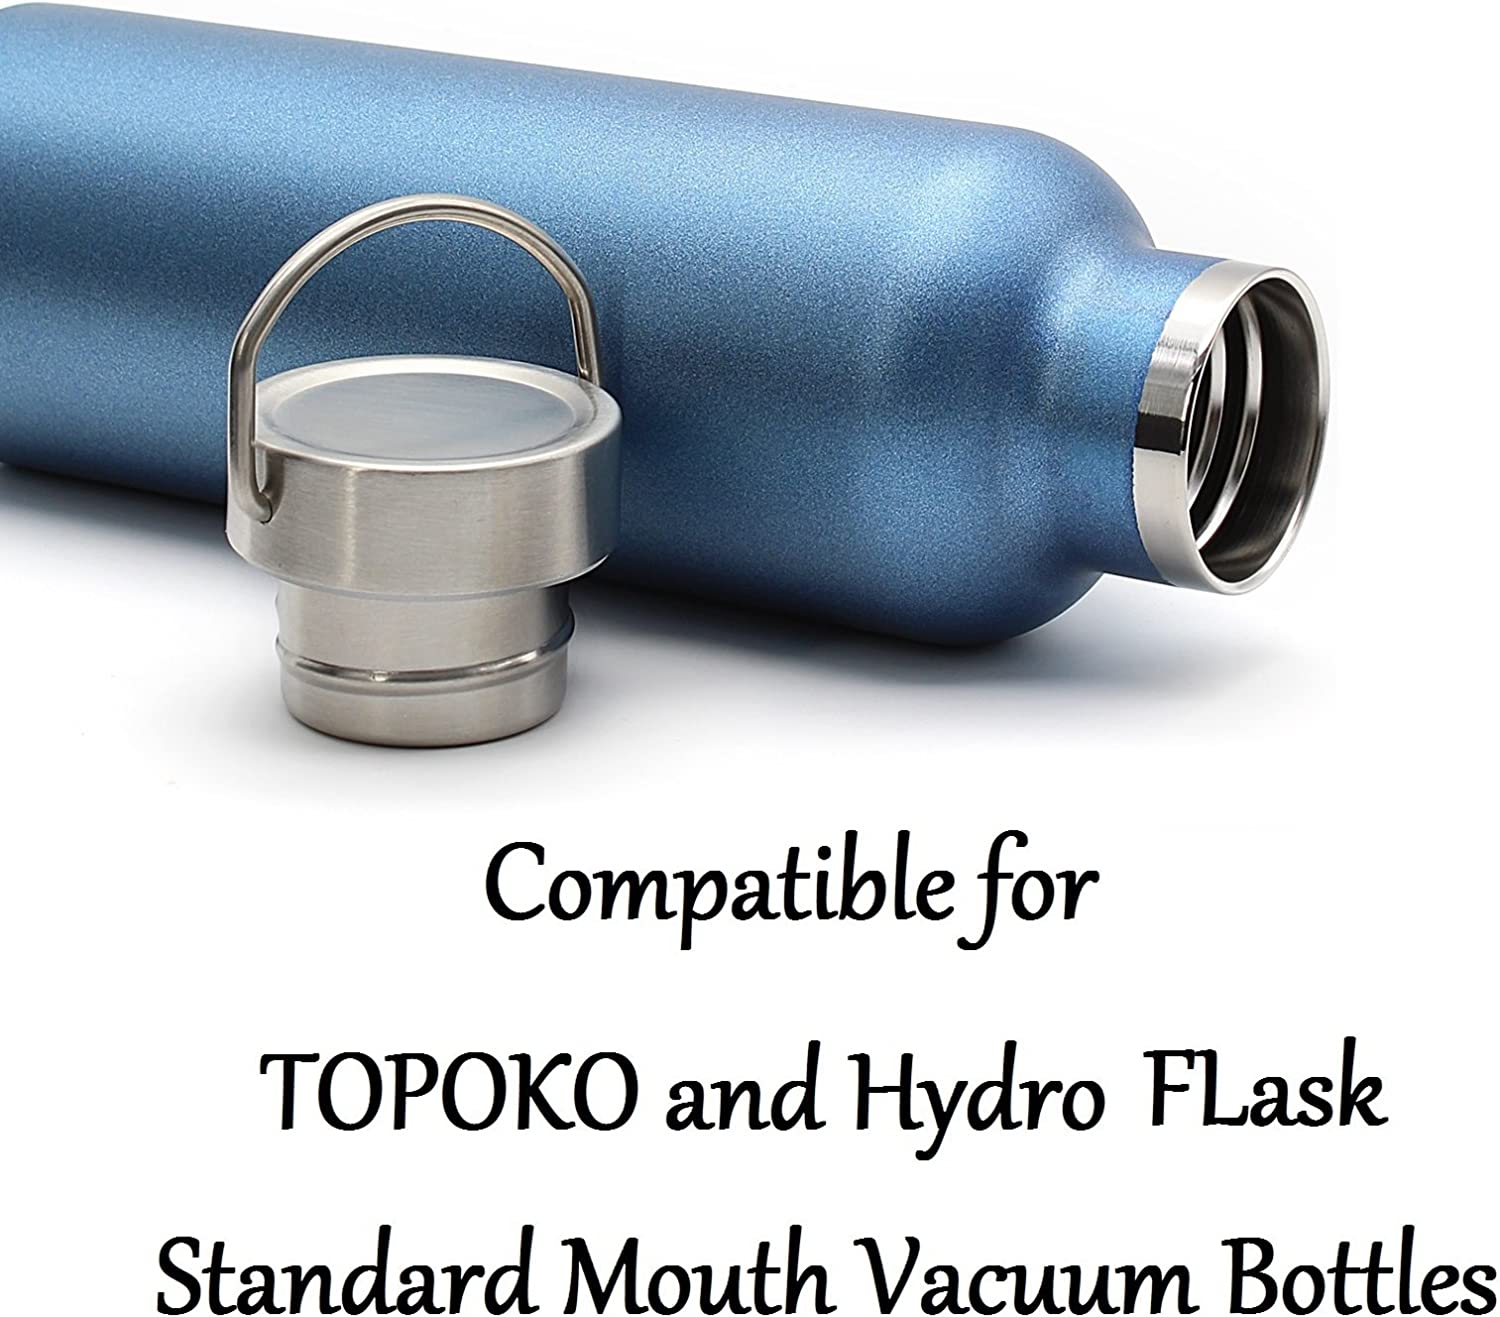 TOPOKO 2-PACK Replacement Lids For Standard Mouth Water Bottle Vacuum Insulated Double Wall Stainless Steel 2-PACK Metal /& Twist Lid Standard Mouth